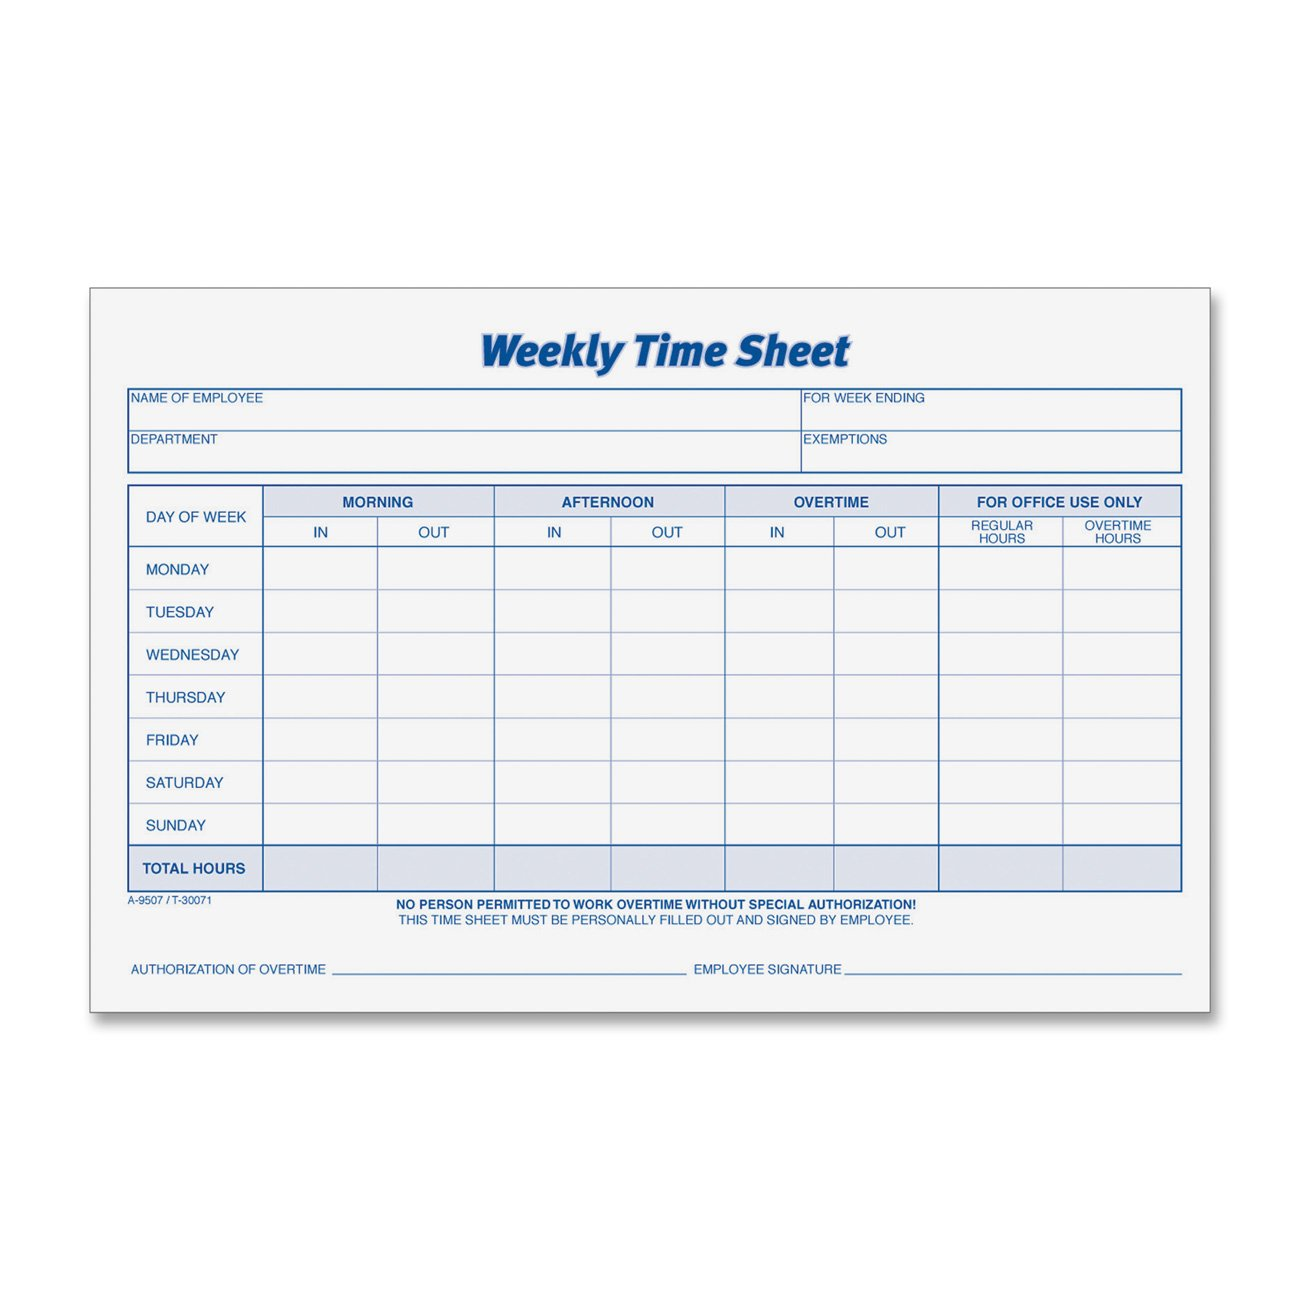 TOPS Weekly Employee Time Sheet, 8.5 x 5.5 Inches, 100 Sheets per ...